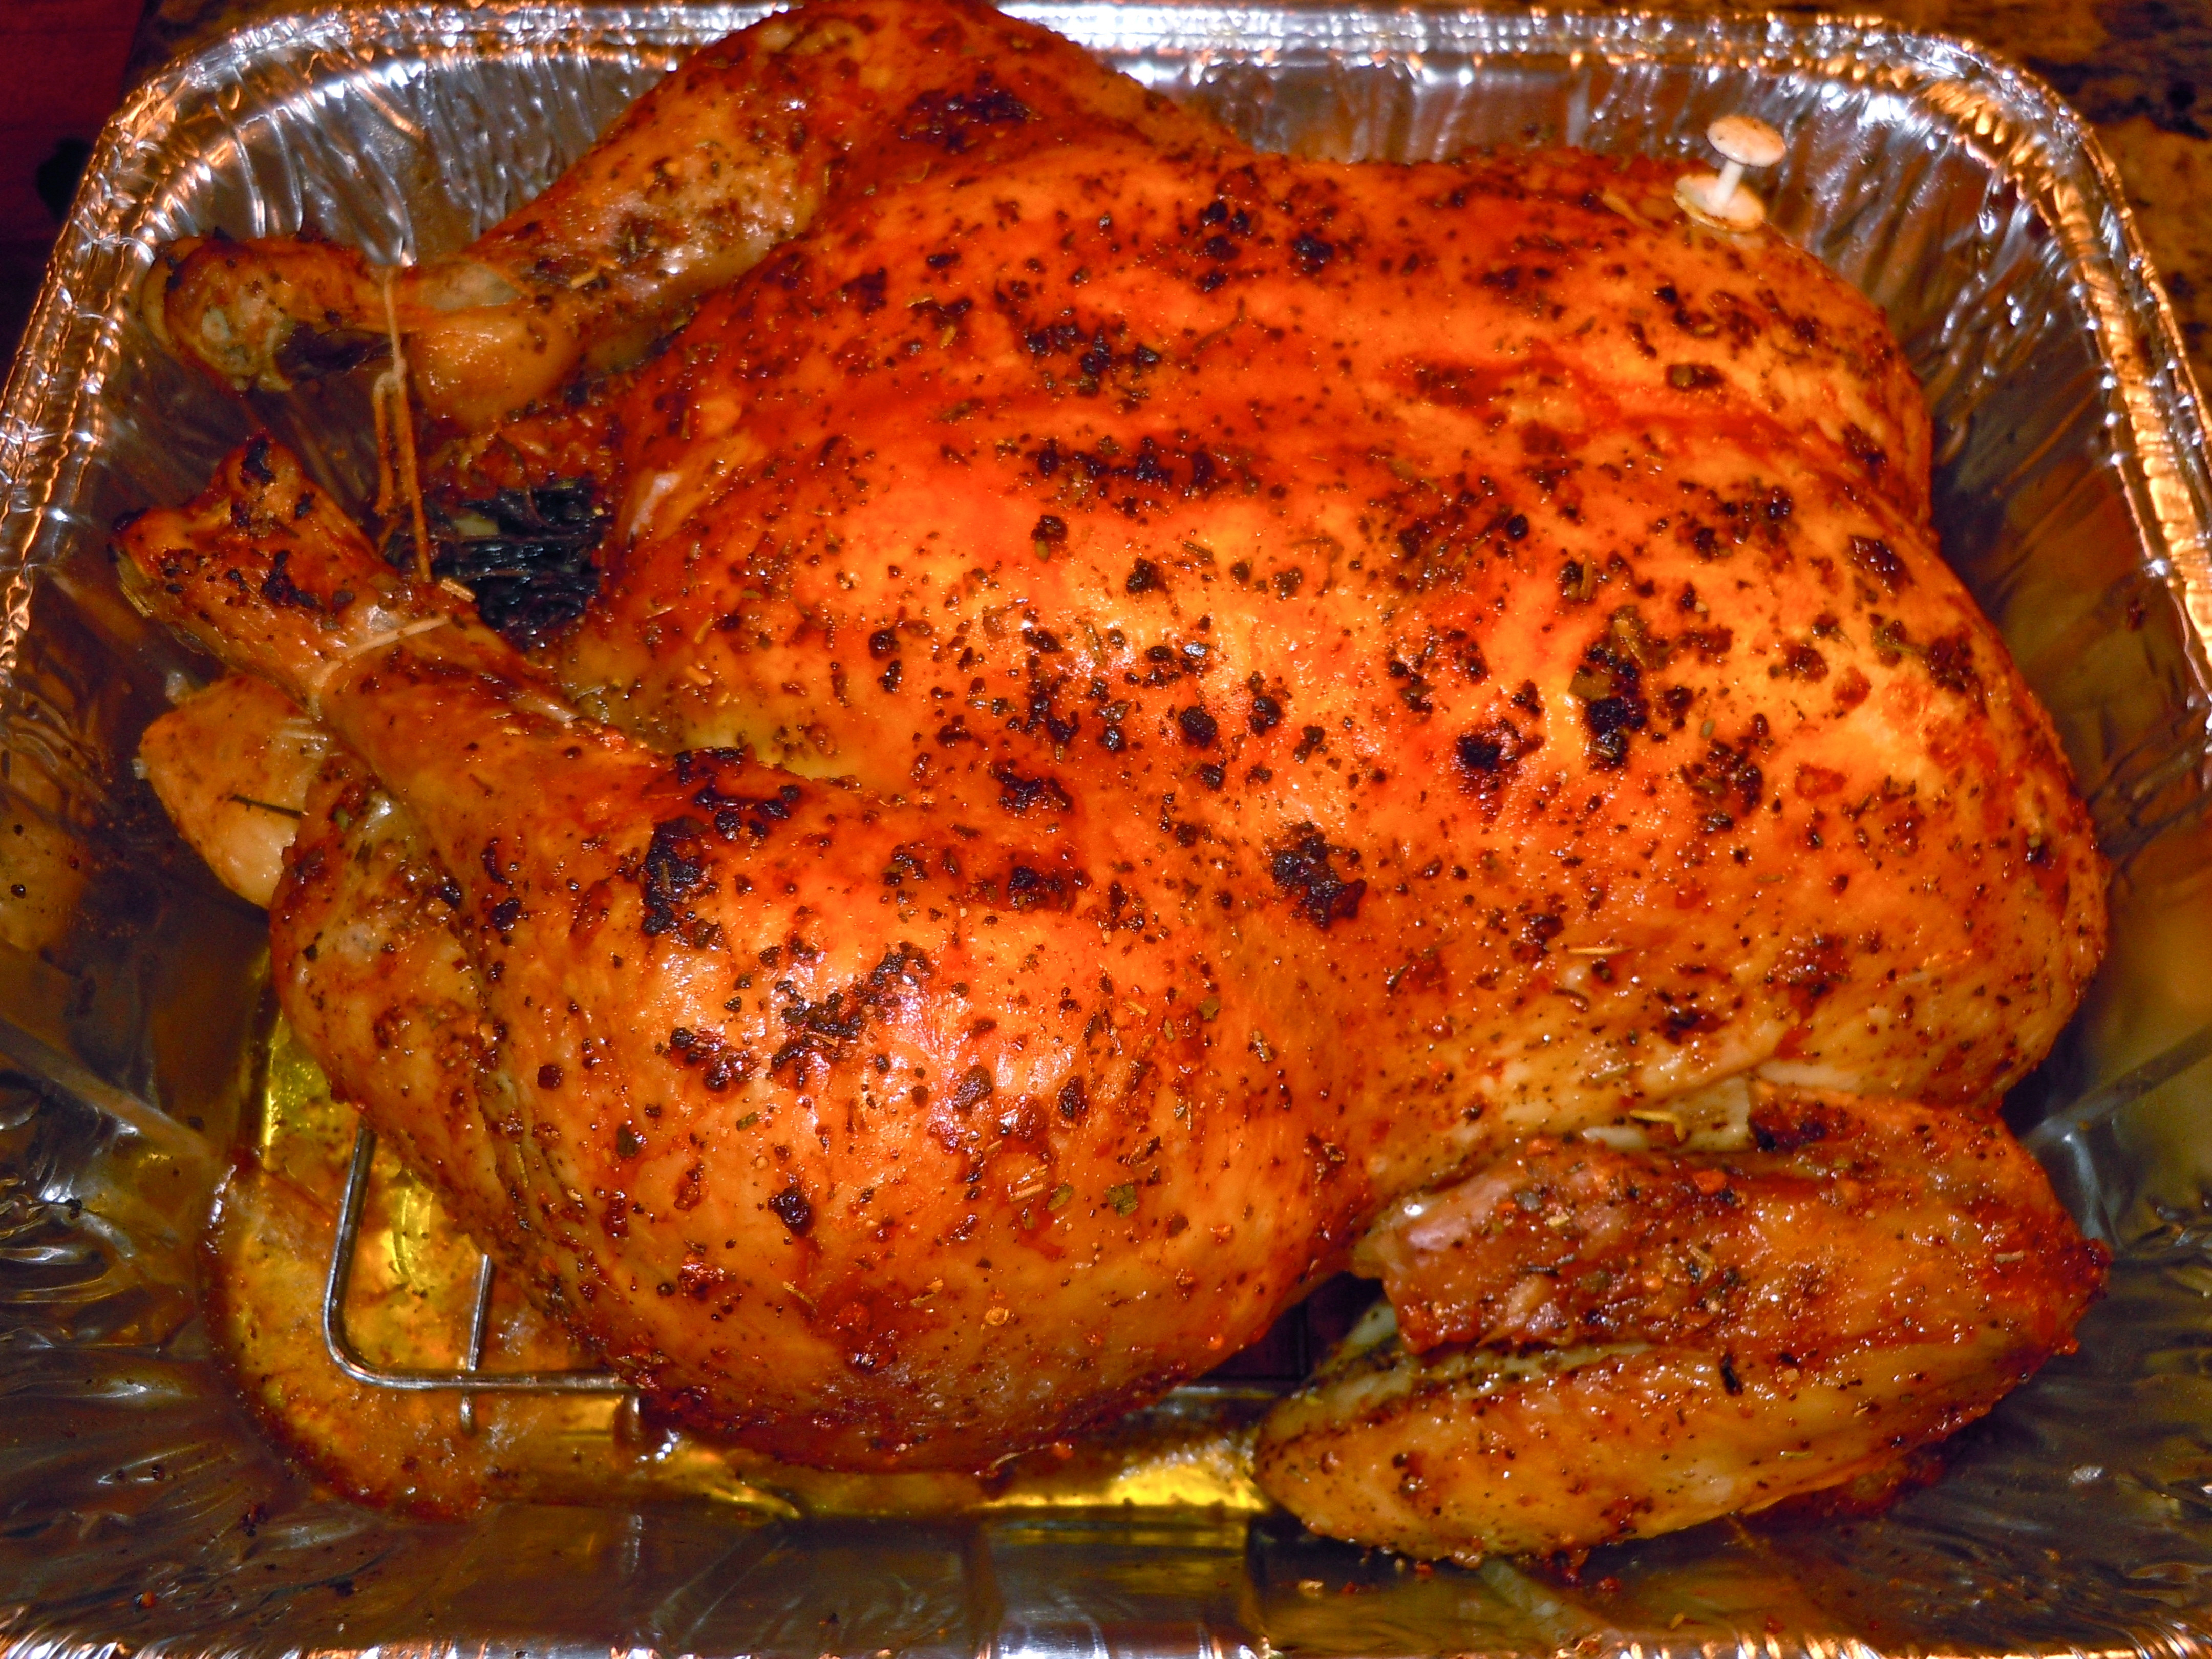 Bake Whole Chicken  Cooking Basics Roasting a Whole Chicken